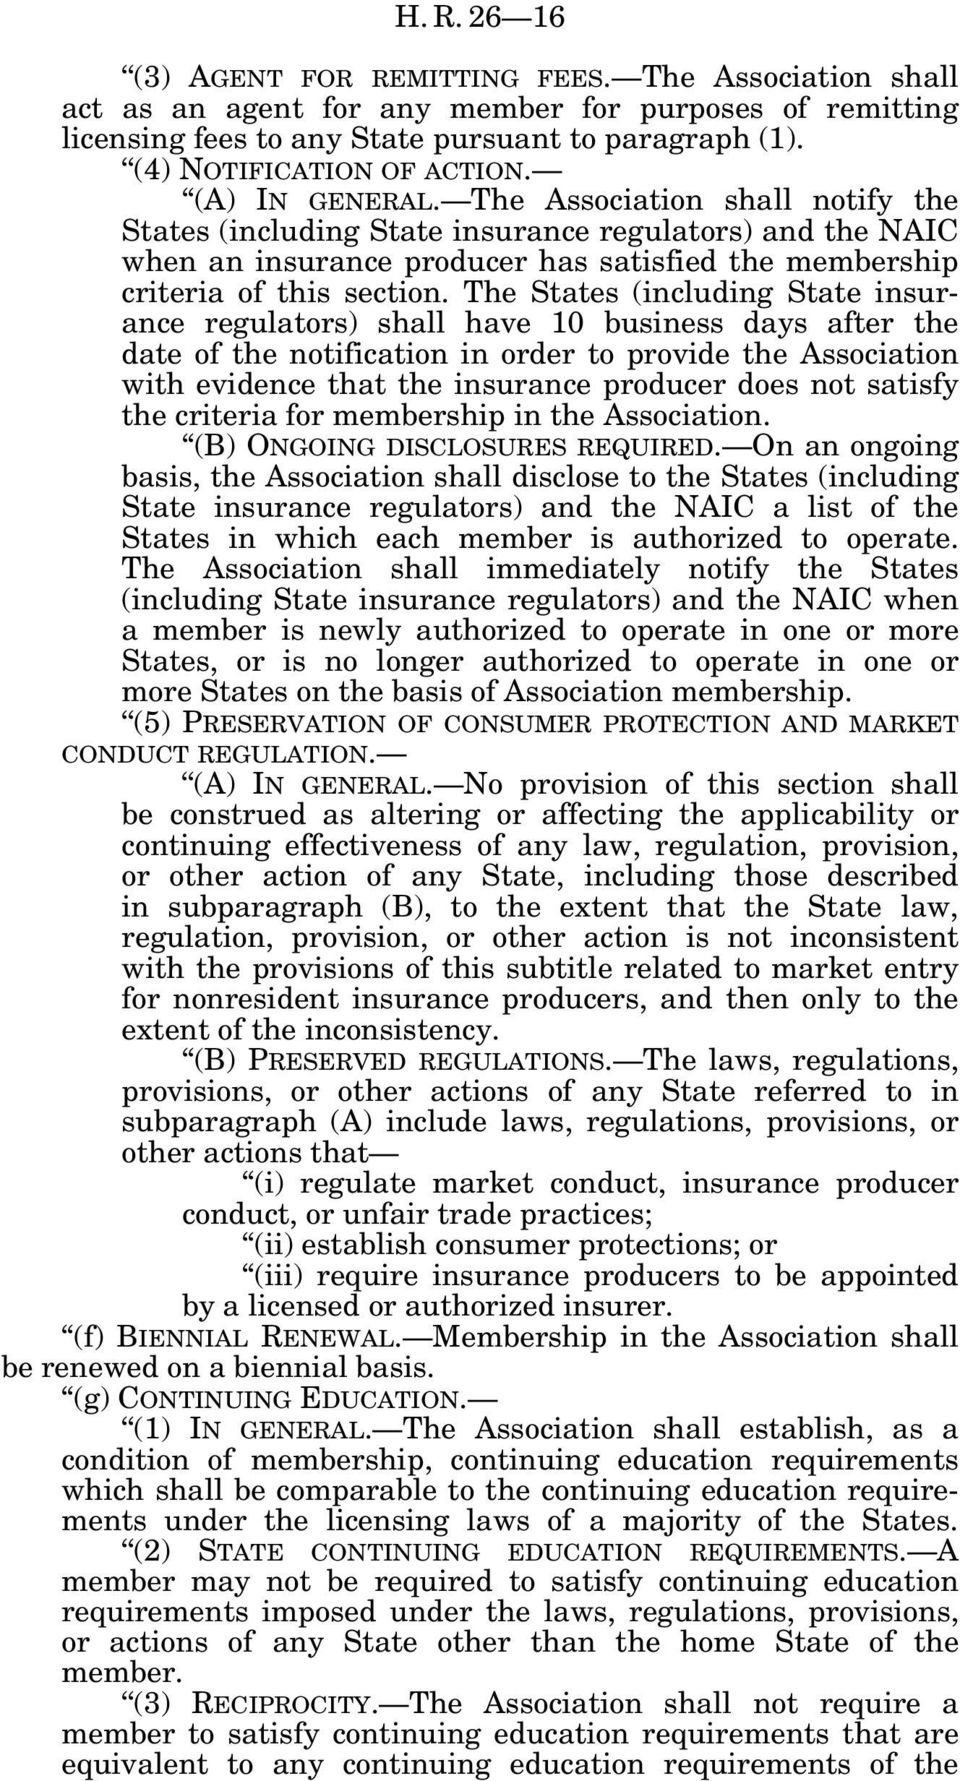 The Association shall notify the States (including State insurance regulators) and the NAIC when an insurance producer has satisfied the membership criteria of this section.